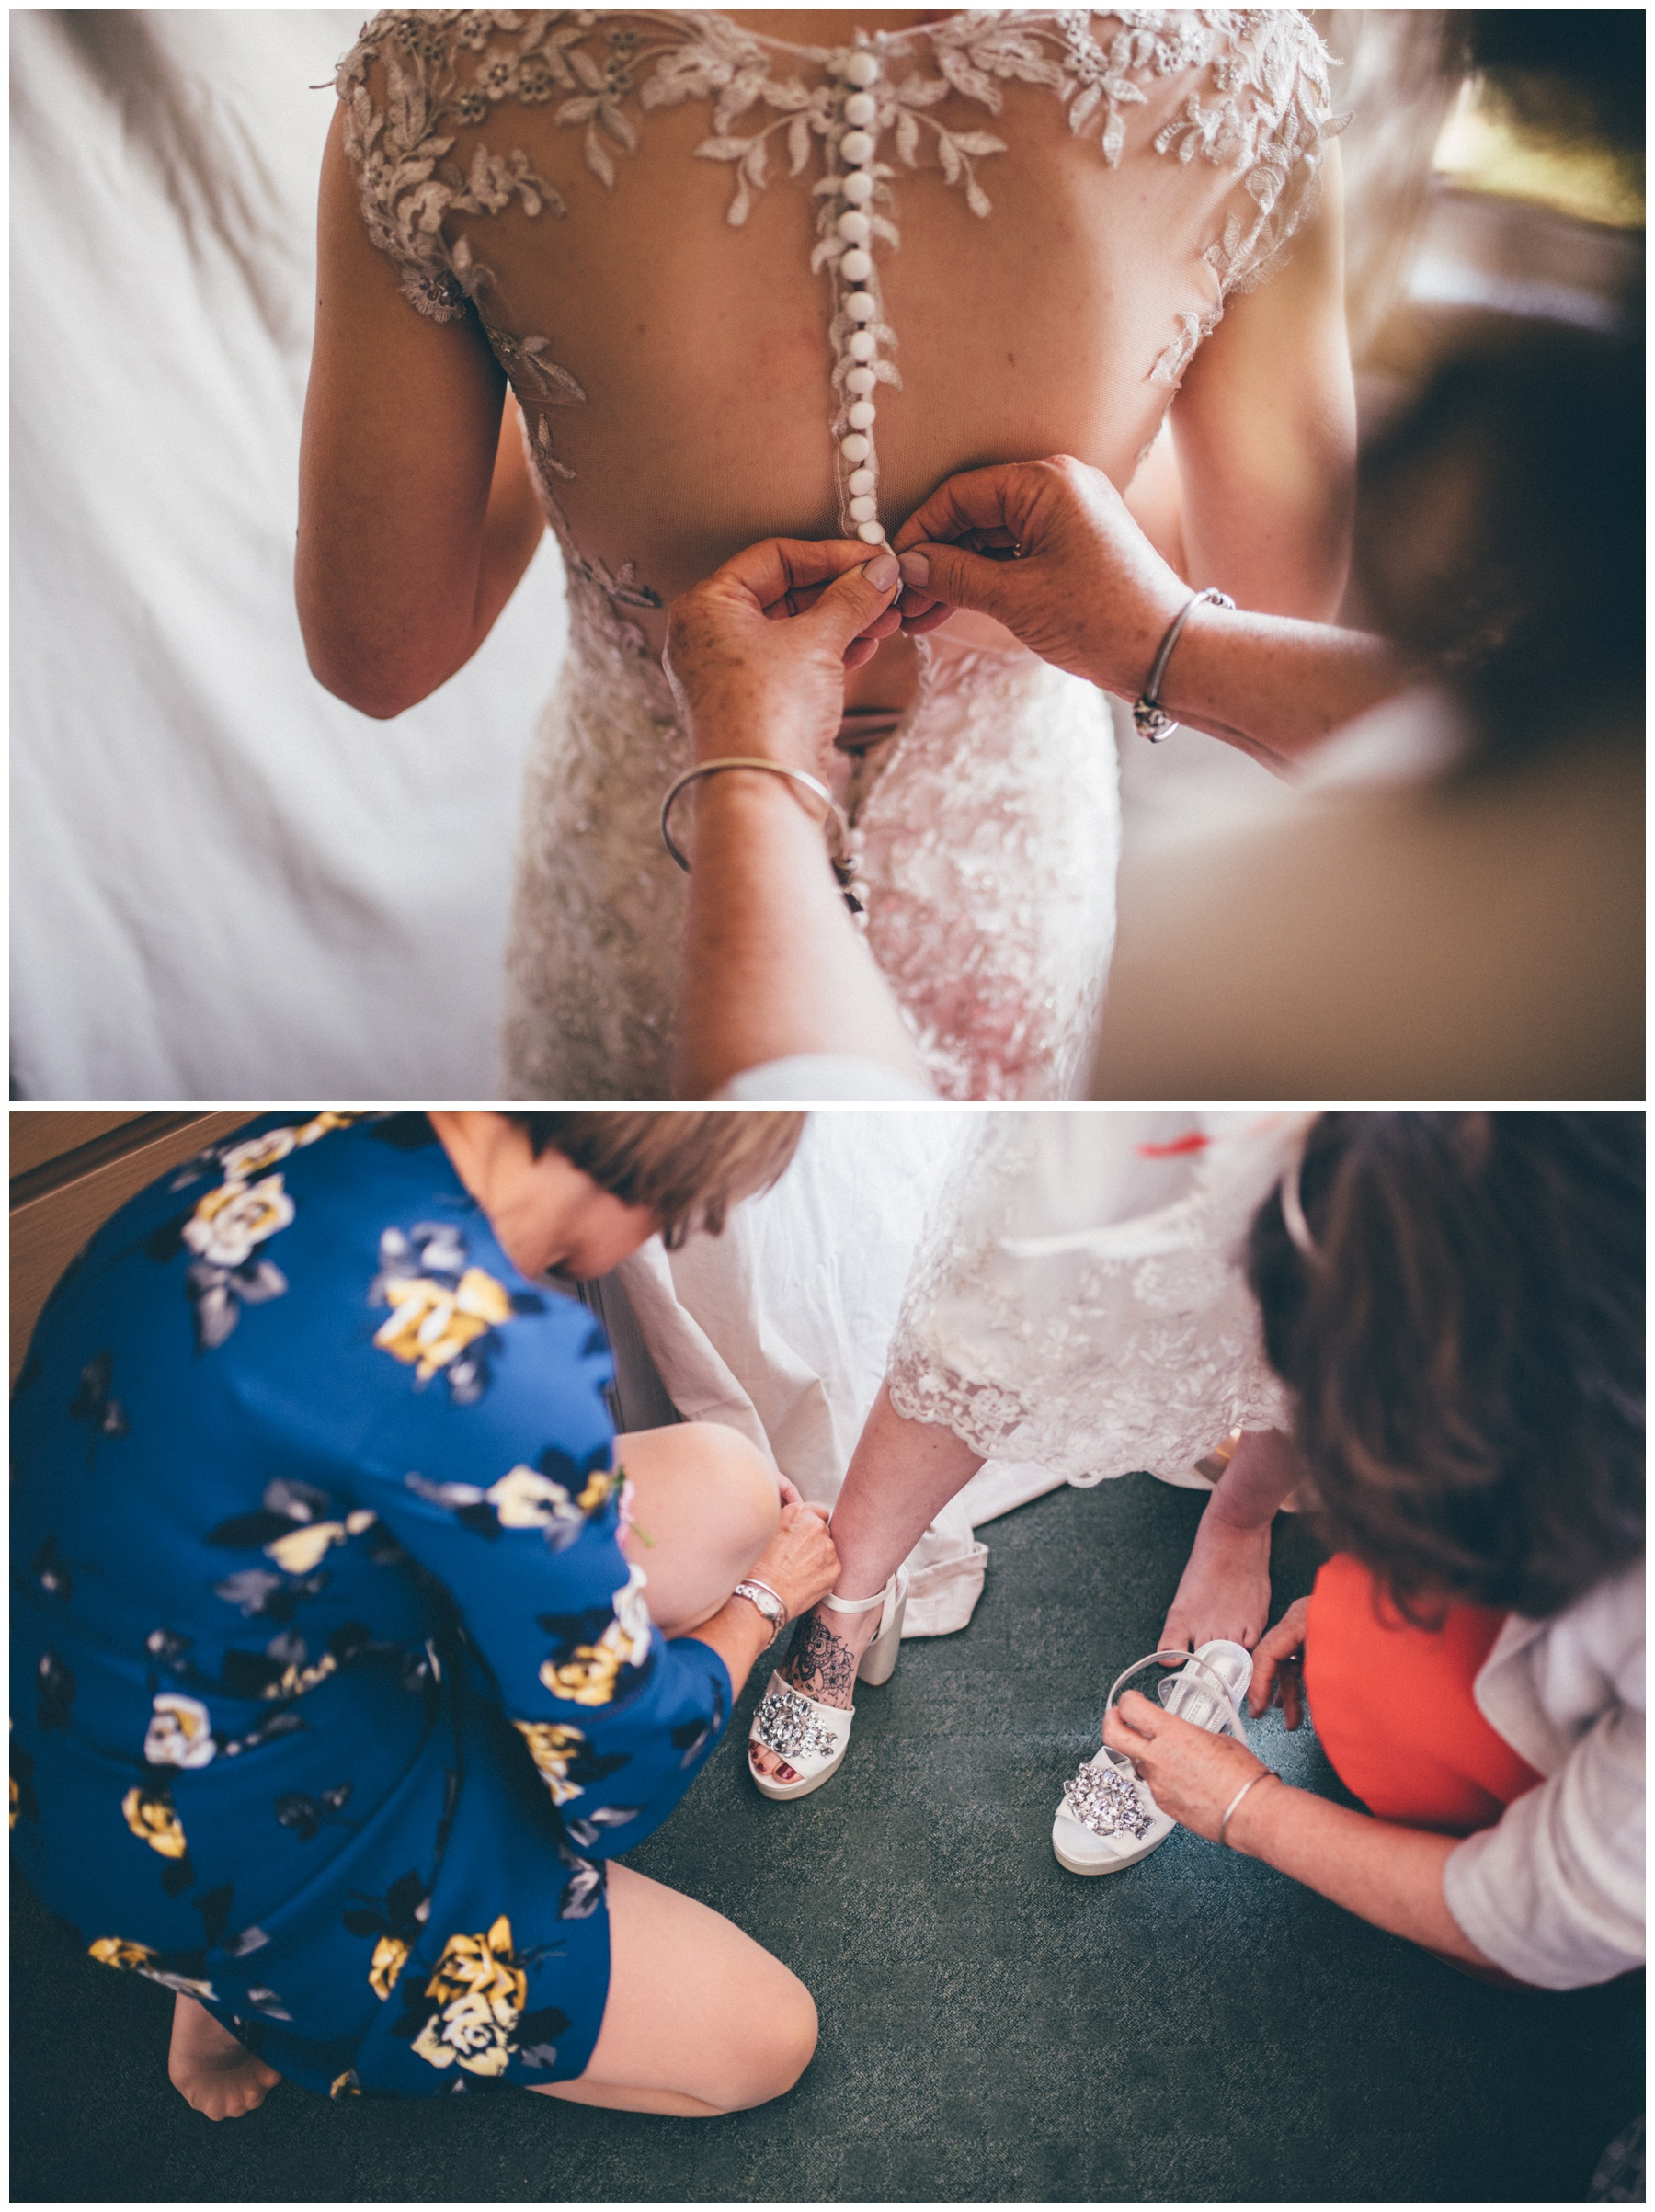 The bride-to-be gets dressed with the help of her mum on her wedding day.